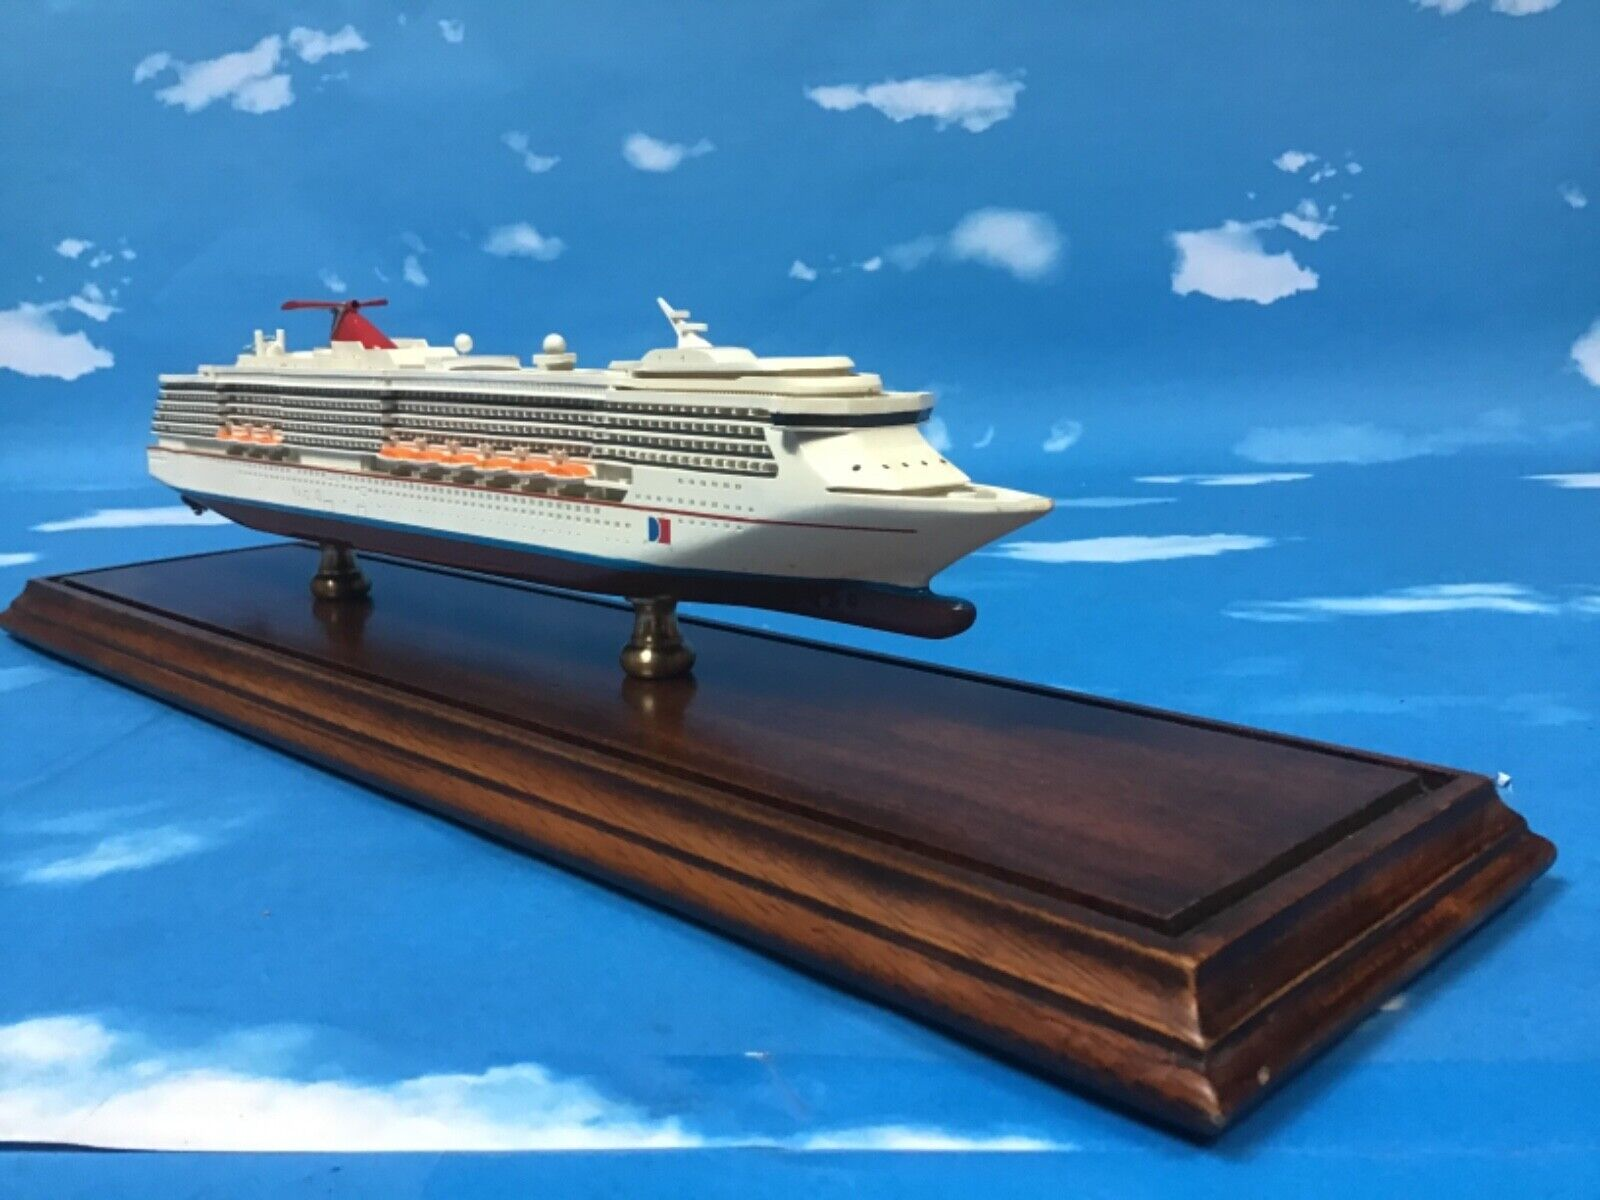 CARNIVAL LEGEND CLASS SIZE 20 APPROX SCALE 1 100 APPROX NO PLAQUE NAME - $220.00